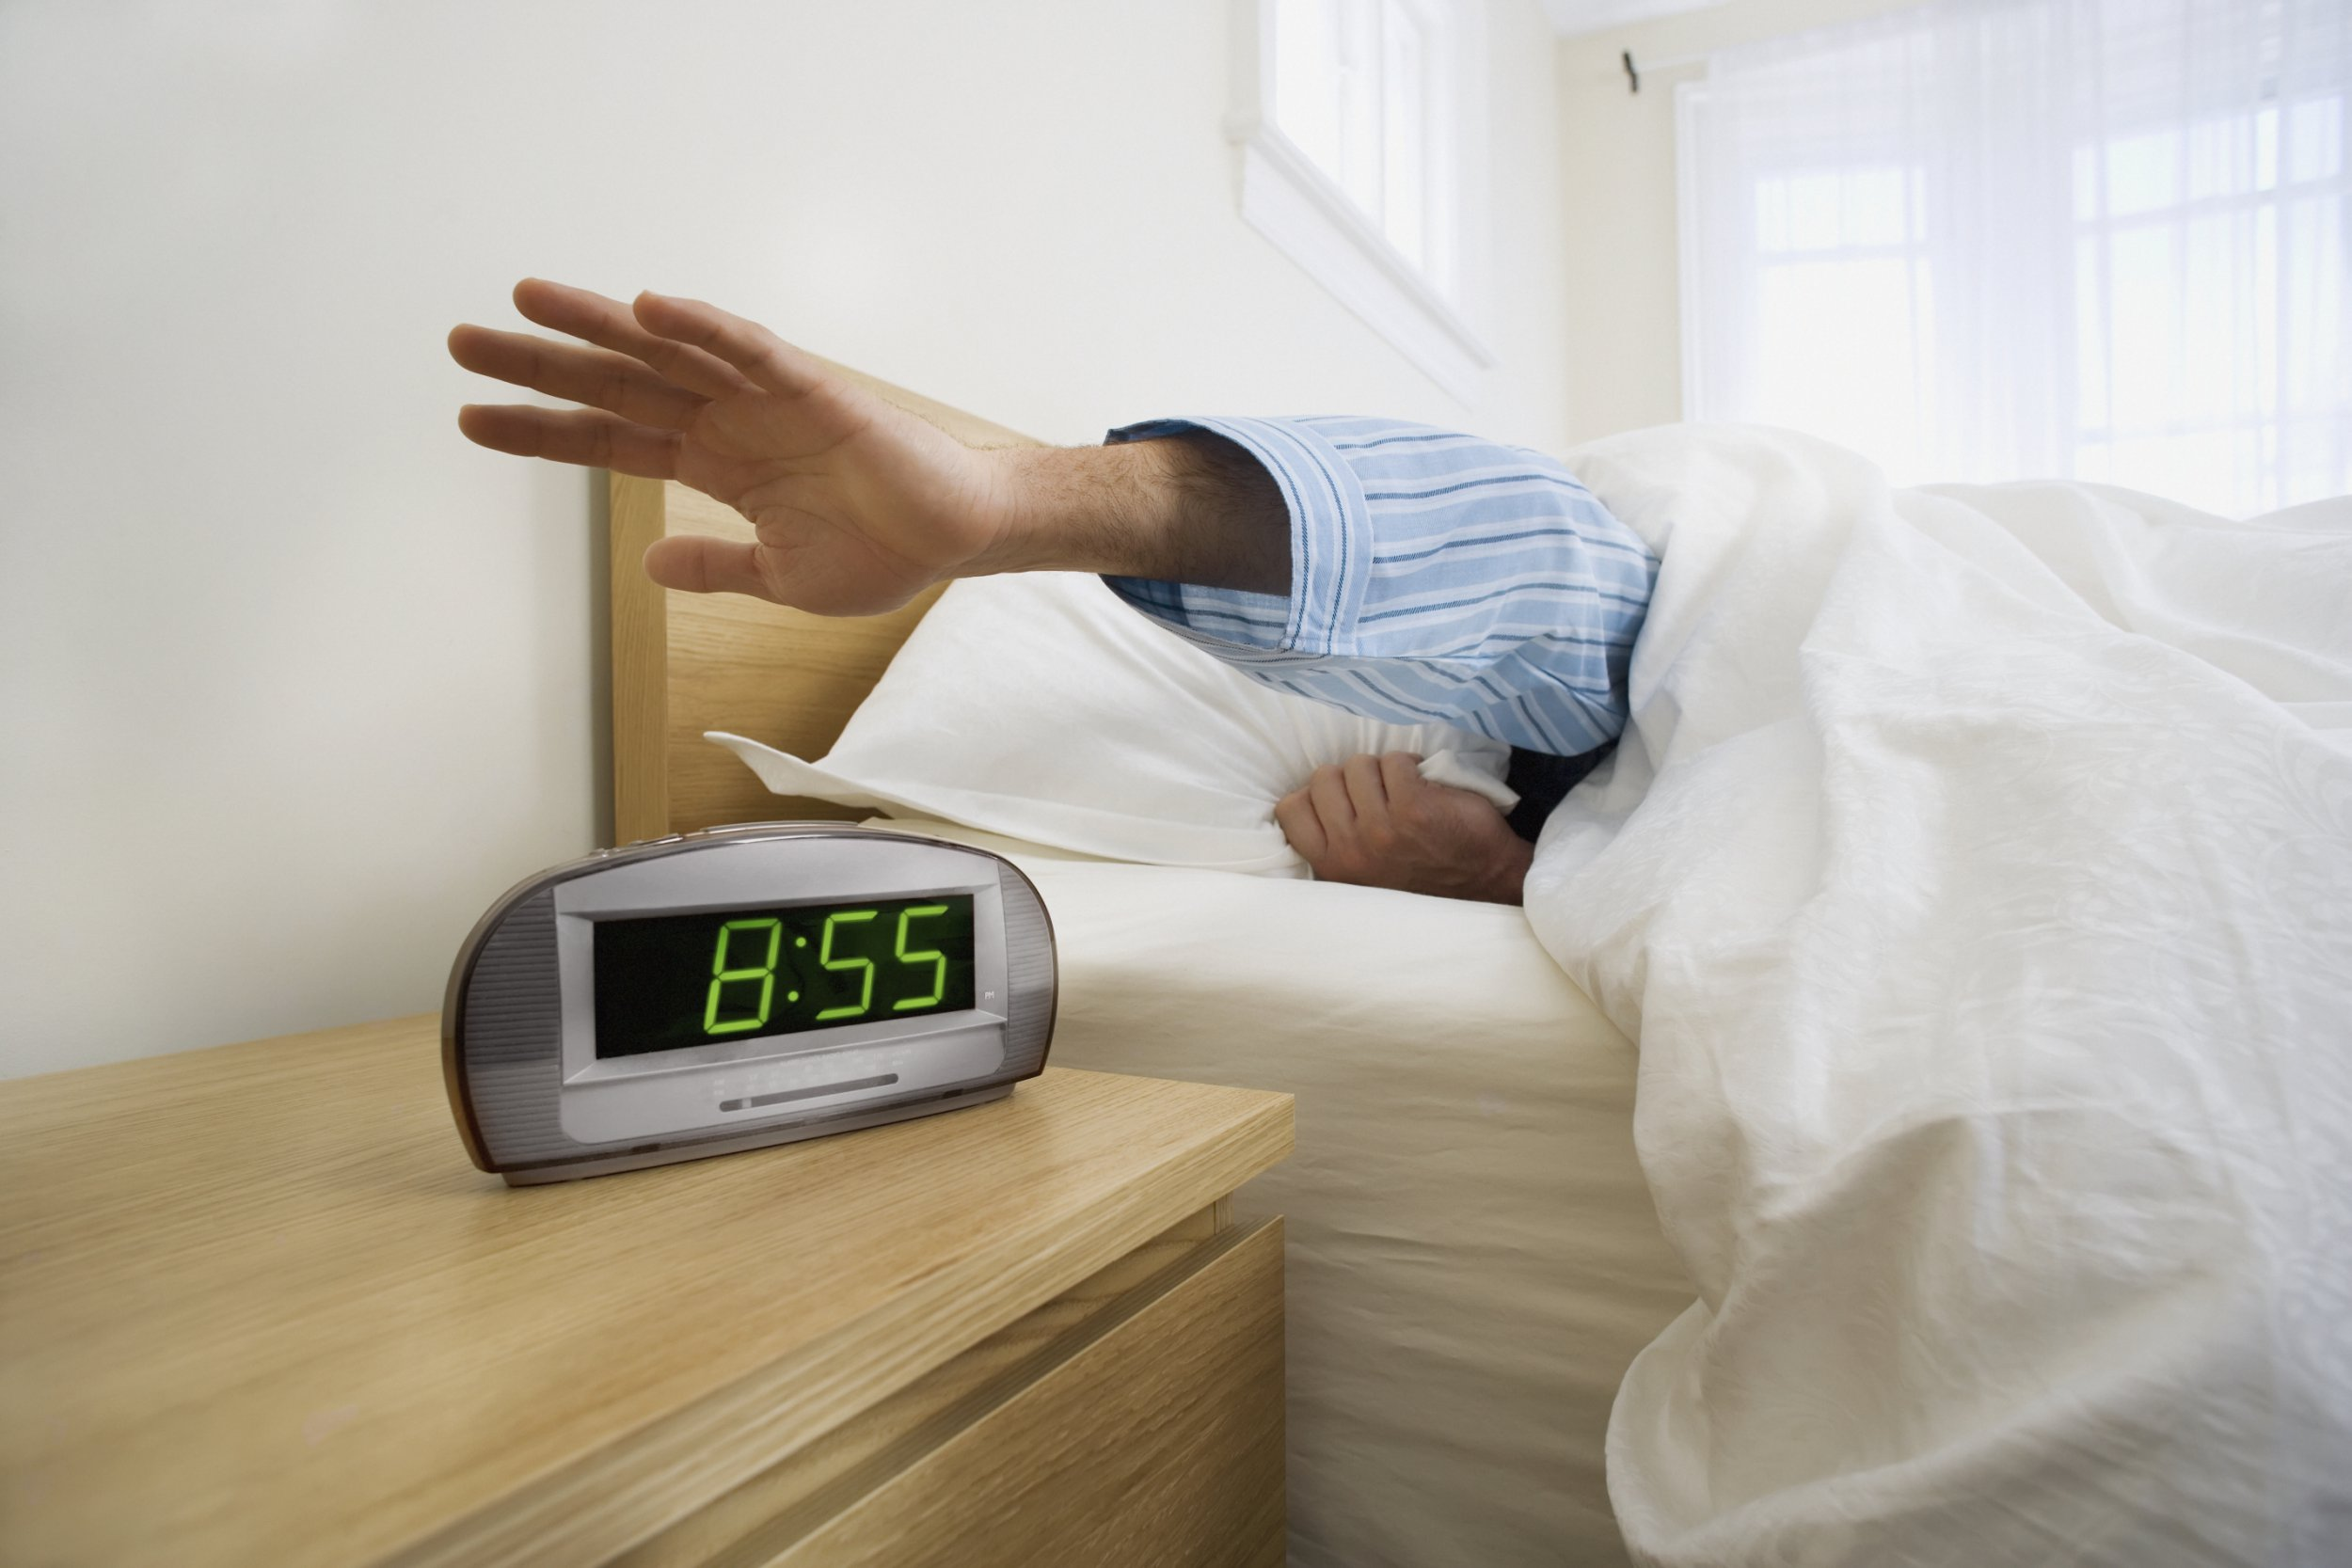 Mandatory Credit: Photo by Design Pics Inc/REX/Shutterstock (3357798a) Model Released - Man shutting off alarm clock toronto, Ontario, Canada VARIOUS